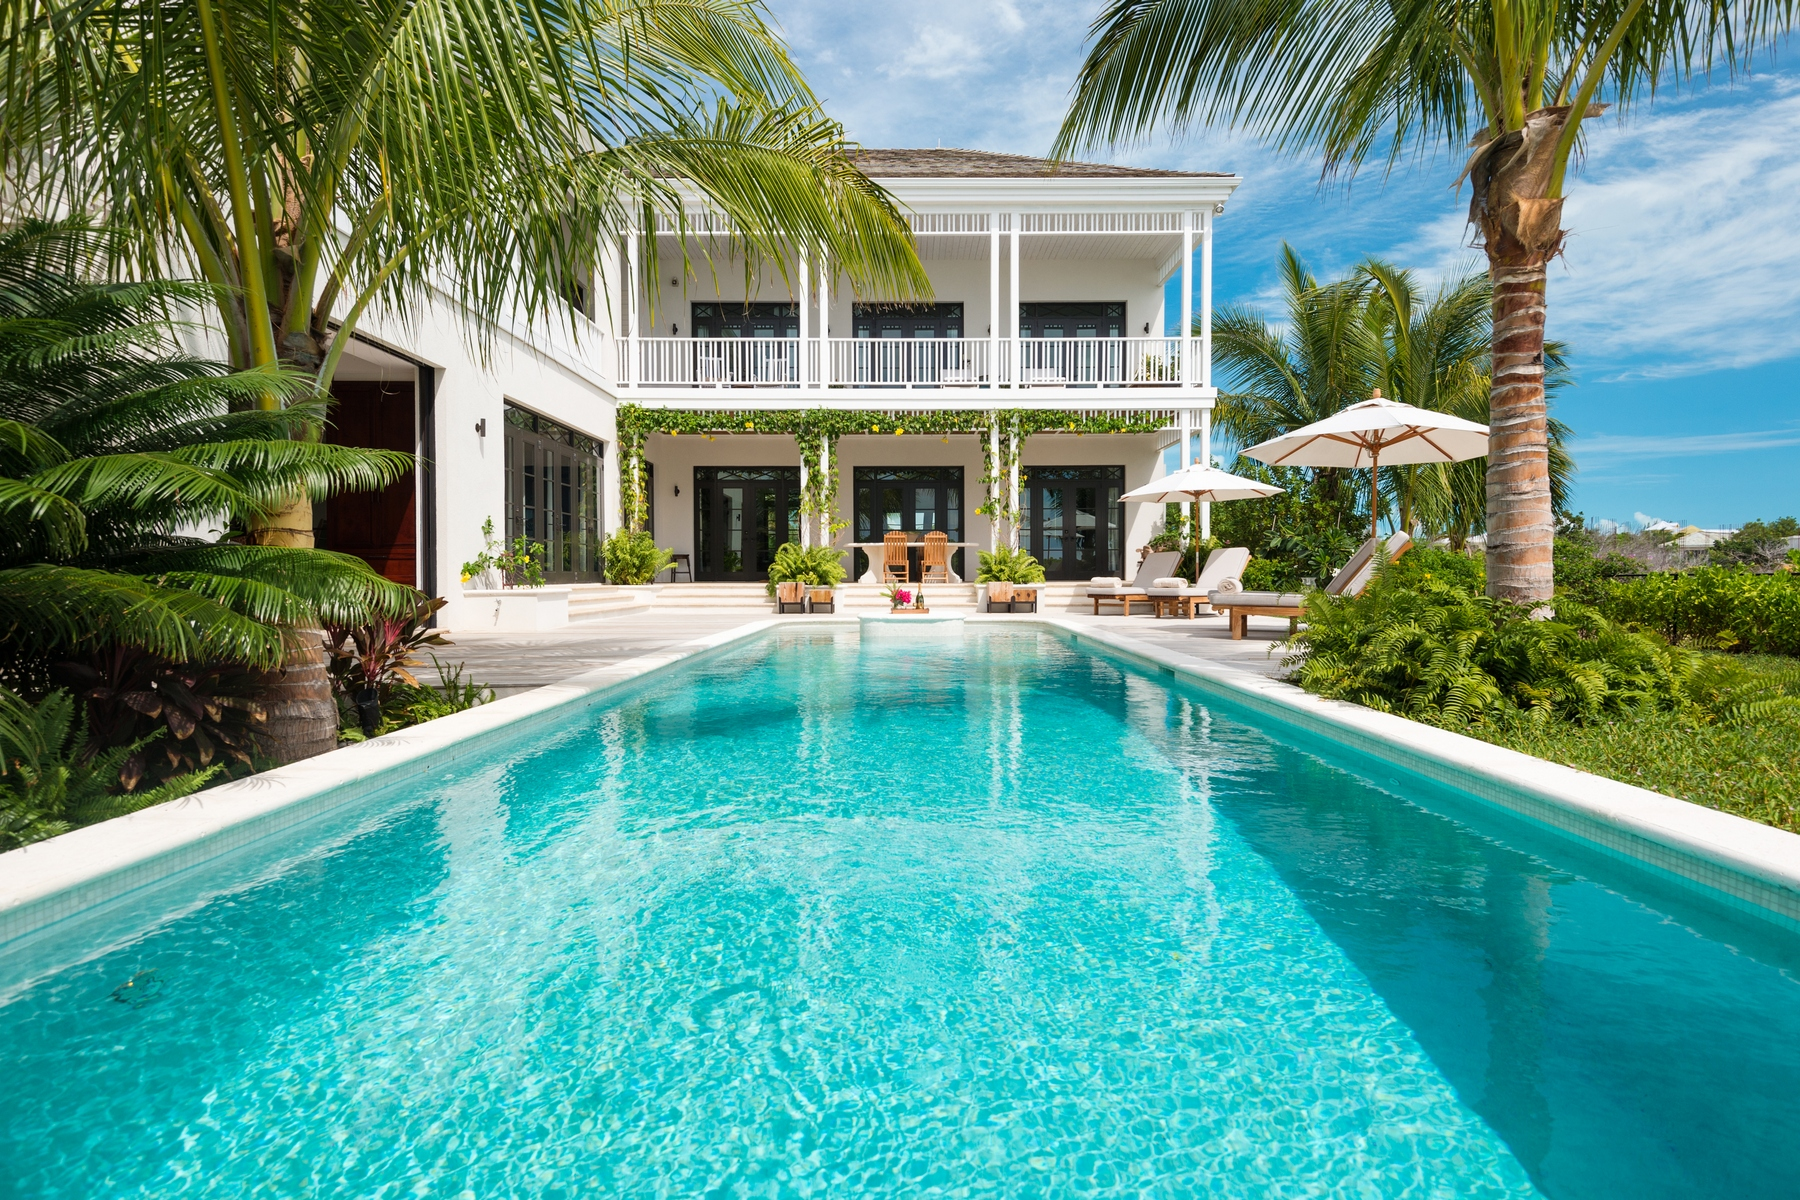 Single Family Home for Rent at Saving Grace Vacation Rental 4 Tranquility Lane Grace Bay, TC Turks And Caicos Islands